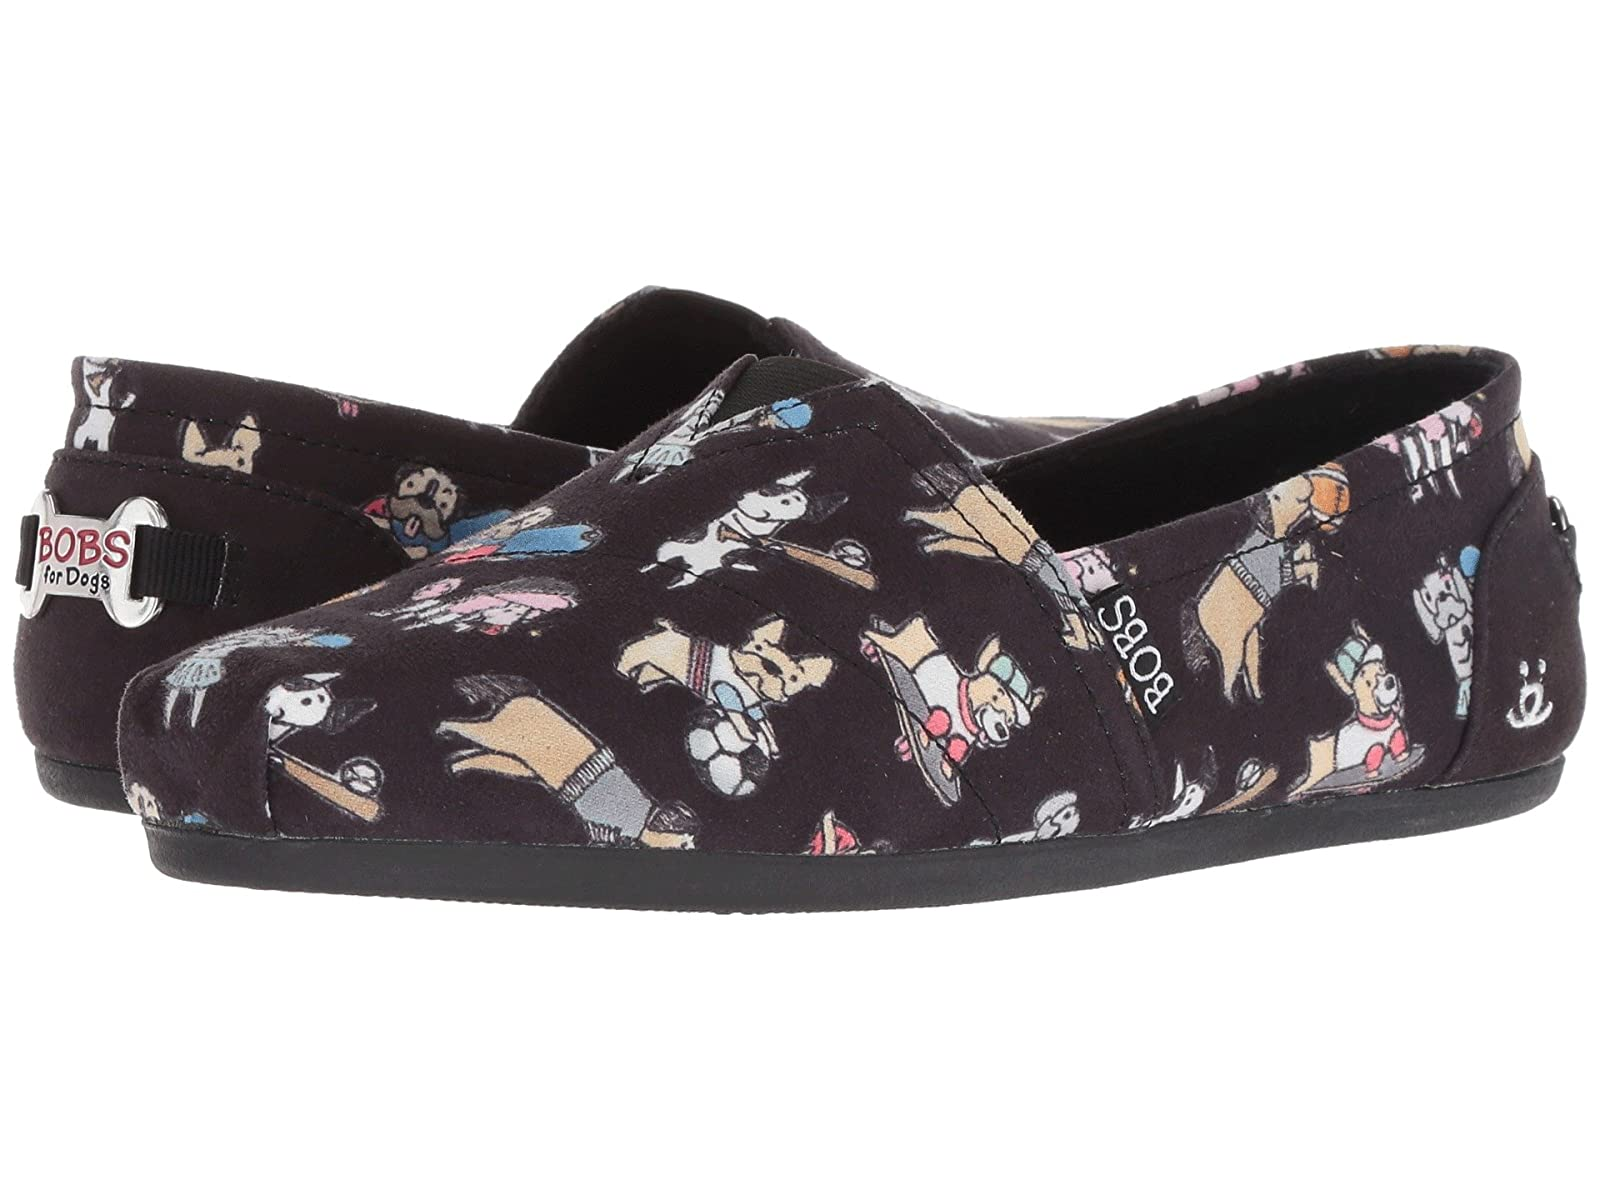 BOBS from SKECHERS BOBS Plush - Go FetchAtmospheric grades have affordable shoes